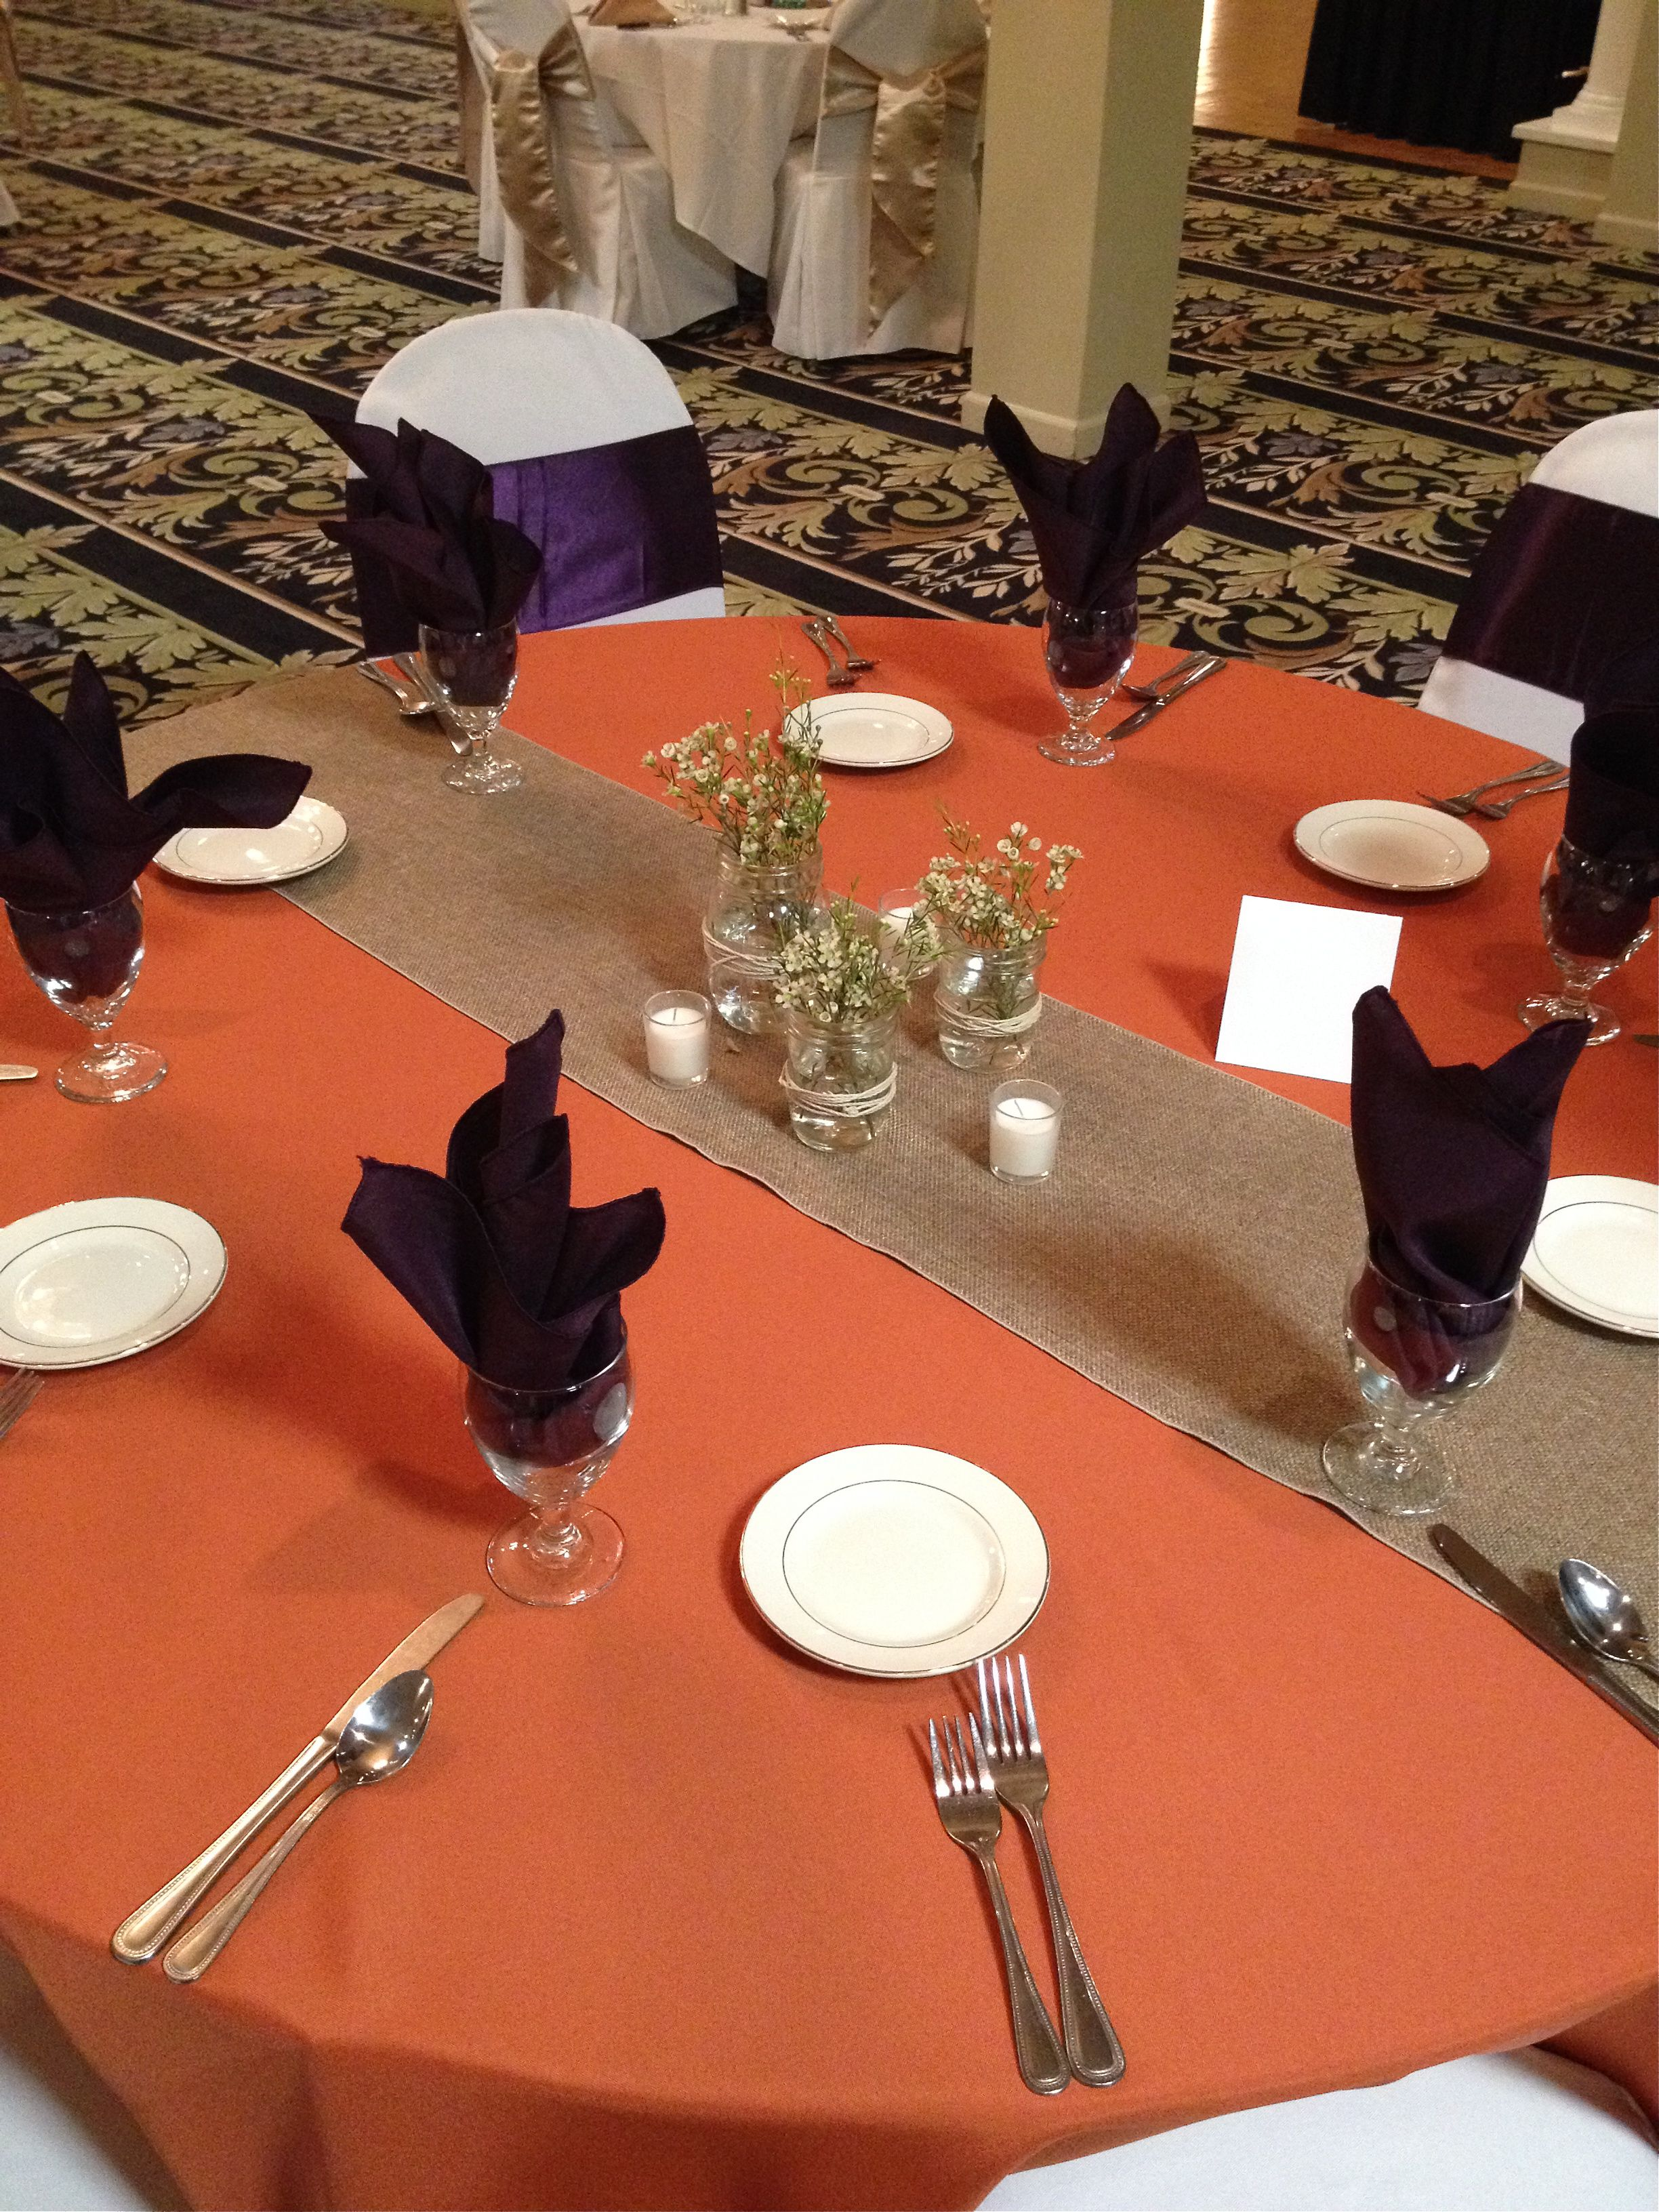 Burnt Orange Table Cloth With Burlap Runner And Plum Napkins In The Gles